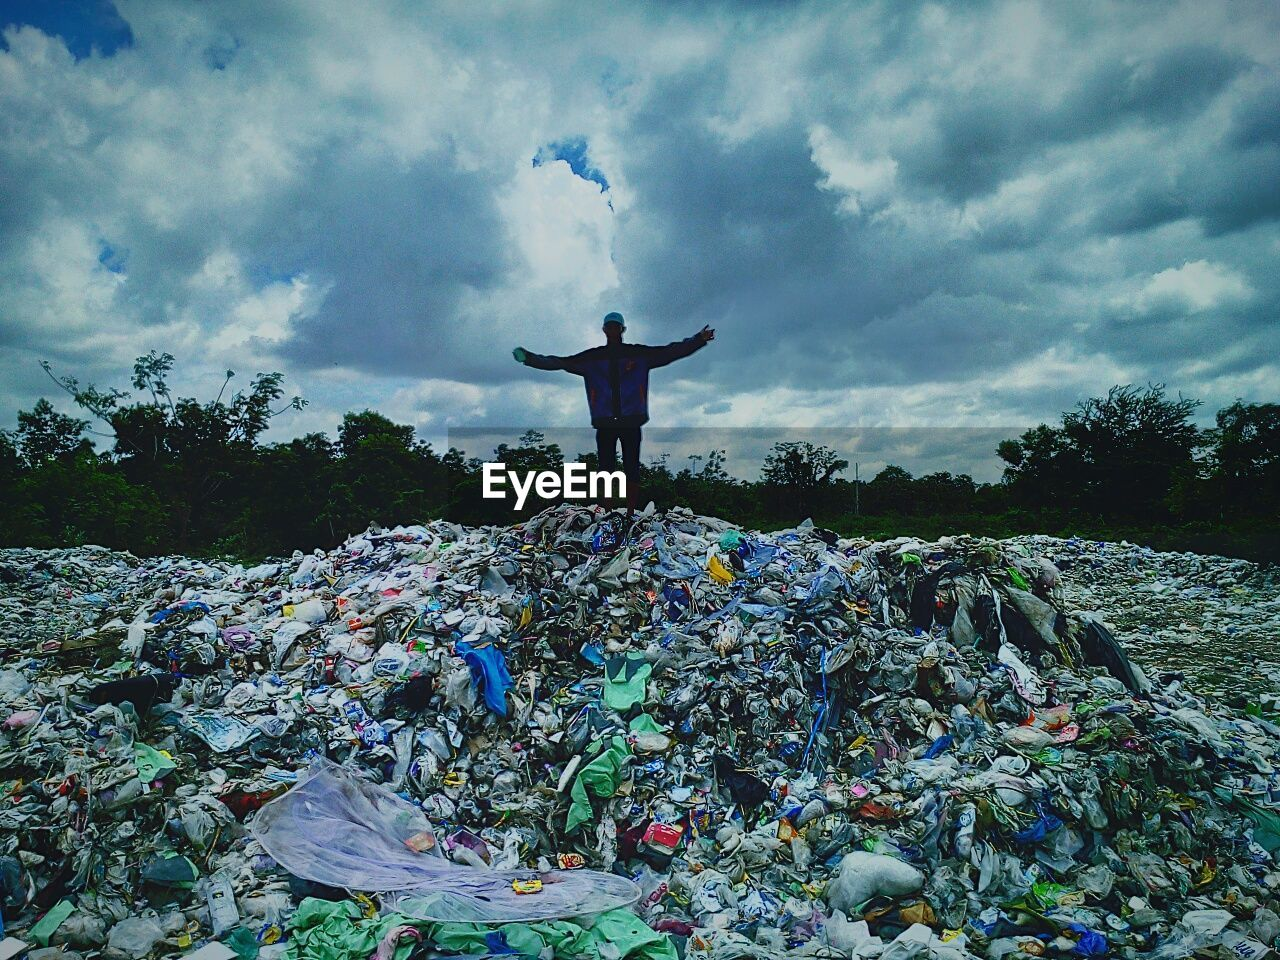 cloud - sky, sky, one person, arms raised, arms outstretched, garbage, men, standing, day, full length, real people, one man only, outdoors, nature, energetic, young adult, only men, adult, people